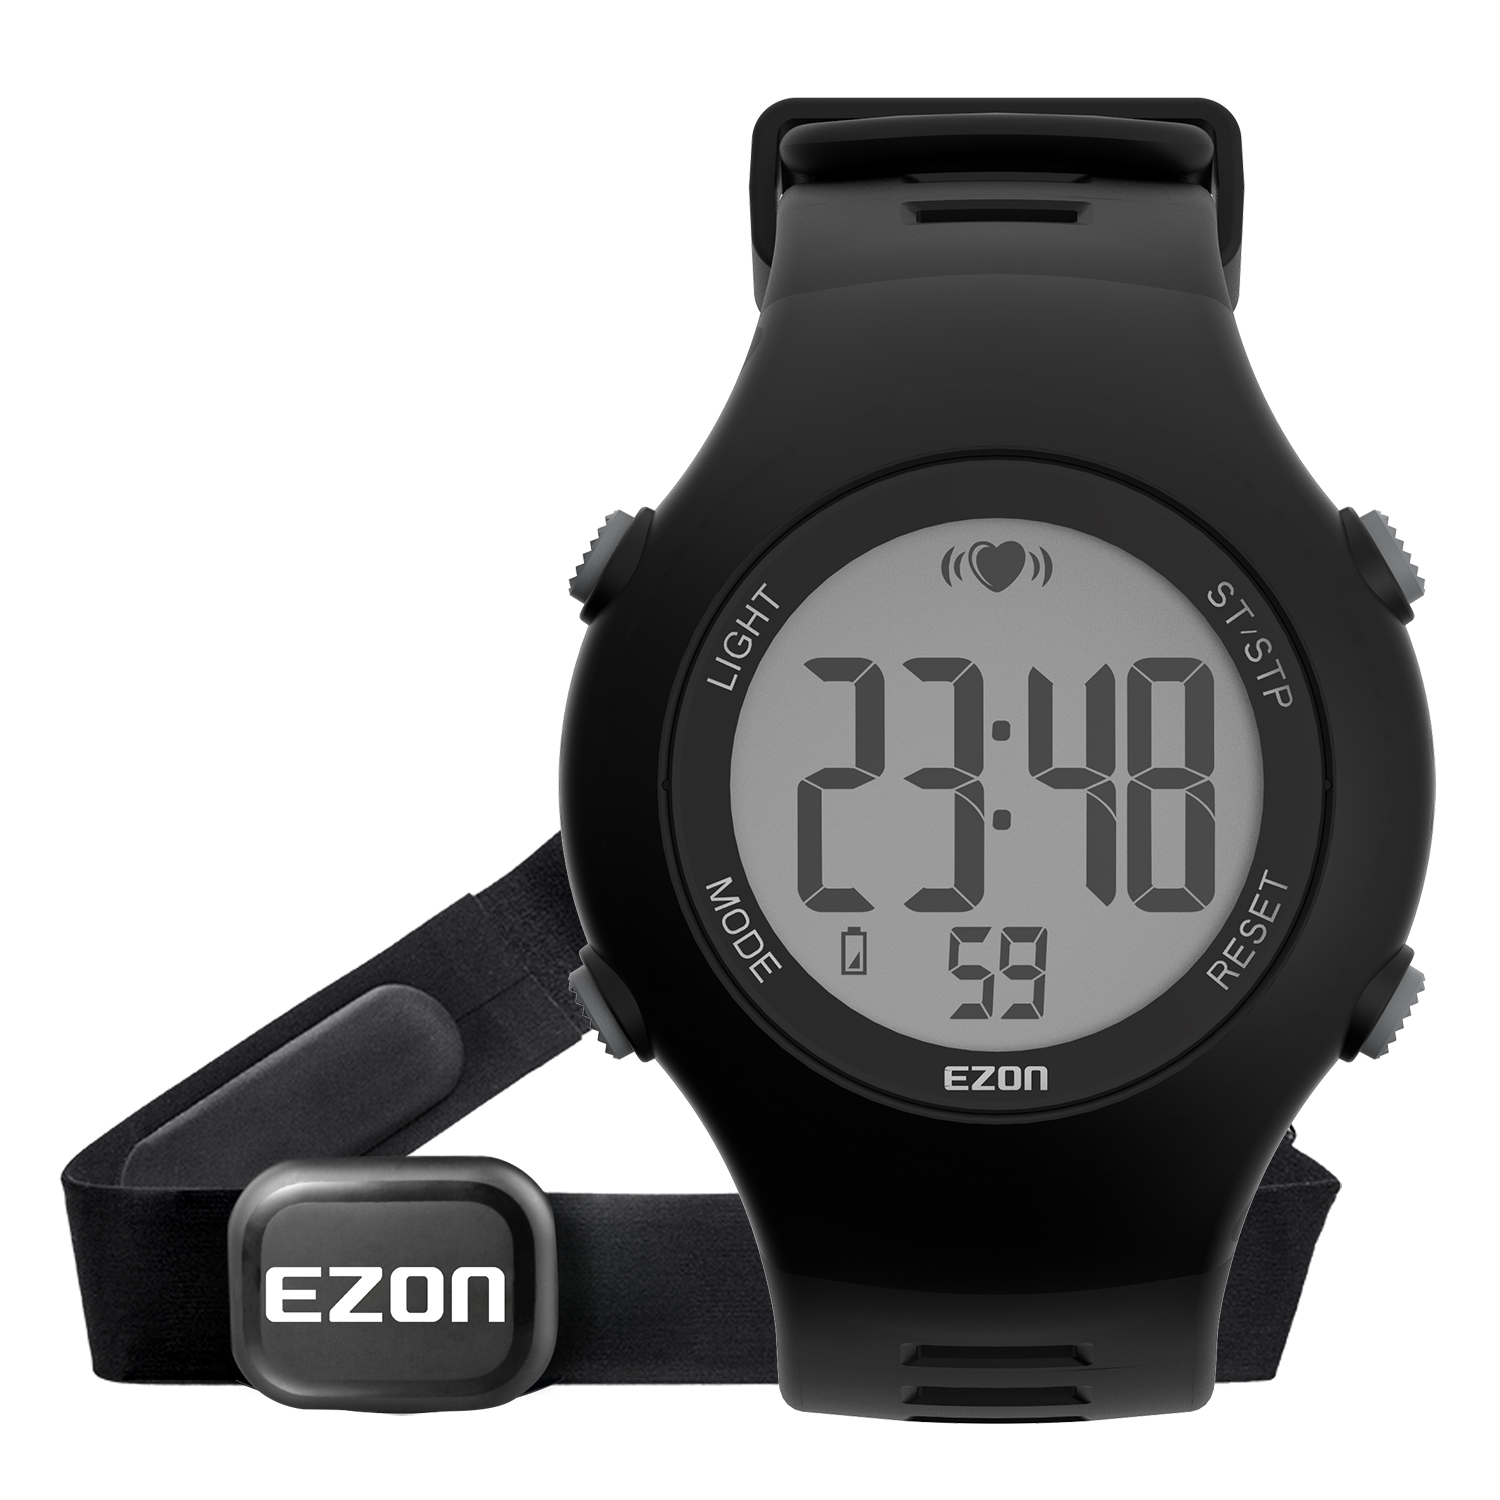 EZON T037 Chest Strap Heart Rate Monitor Sport Watch Men Digital Alarm Chronograph Waterproof Back Light Electronic Wristwatches